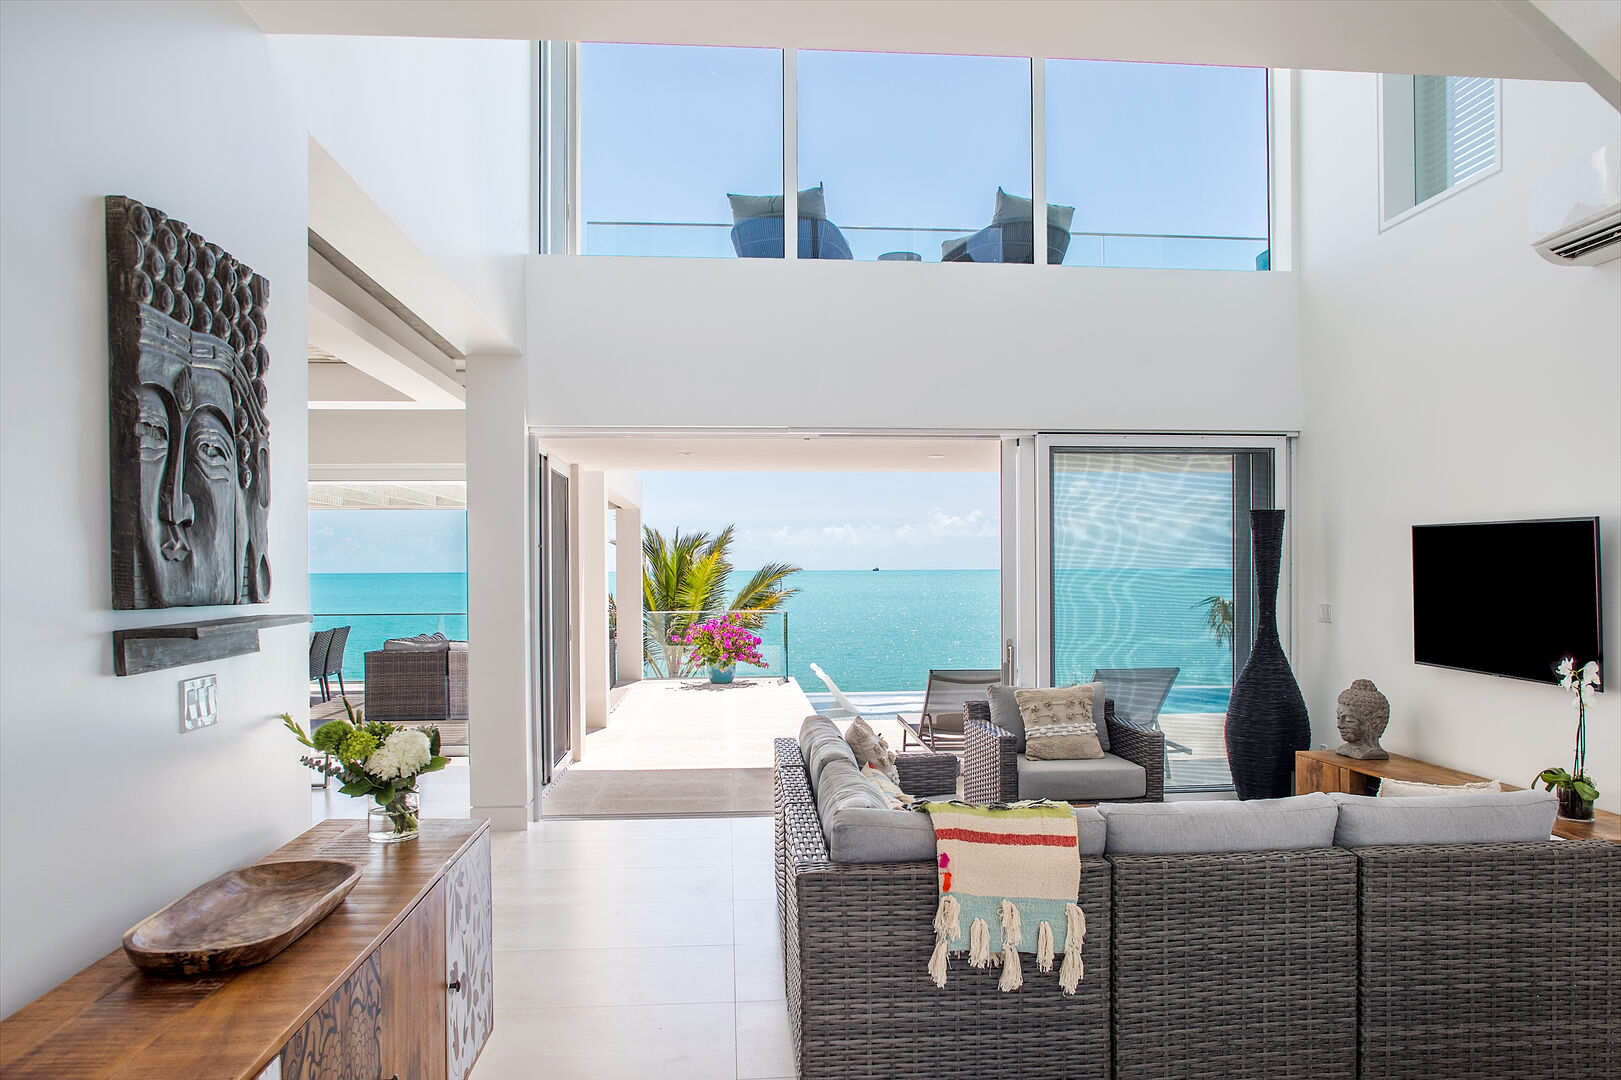 Turks & Caicos vacation rentals